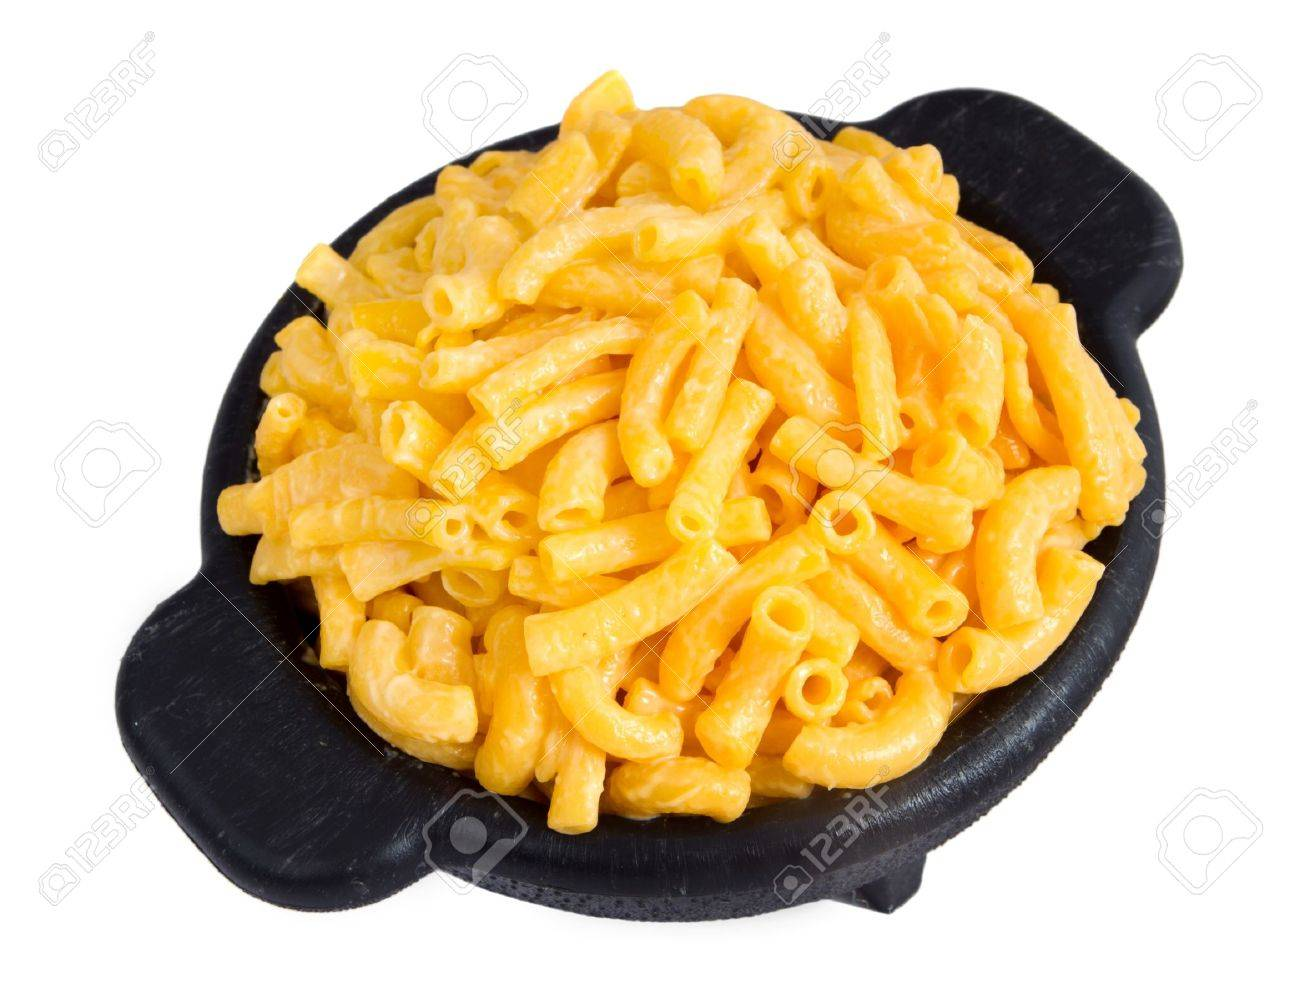 macaroni and cheese dinner on a yellow plate isolated over white Stock Photo - 7969526